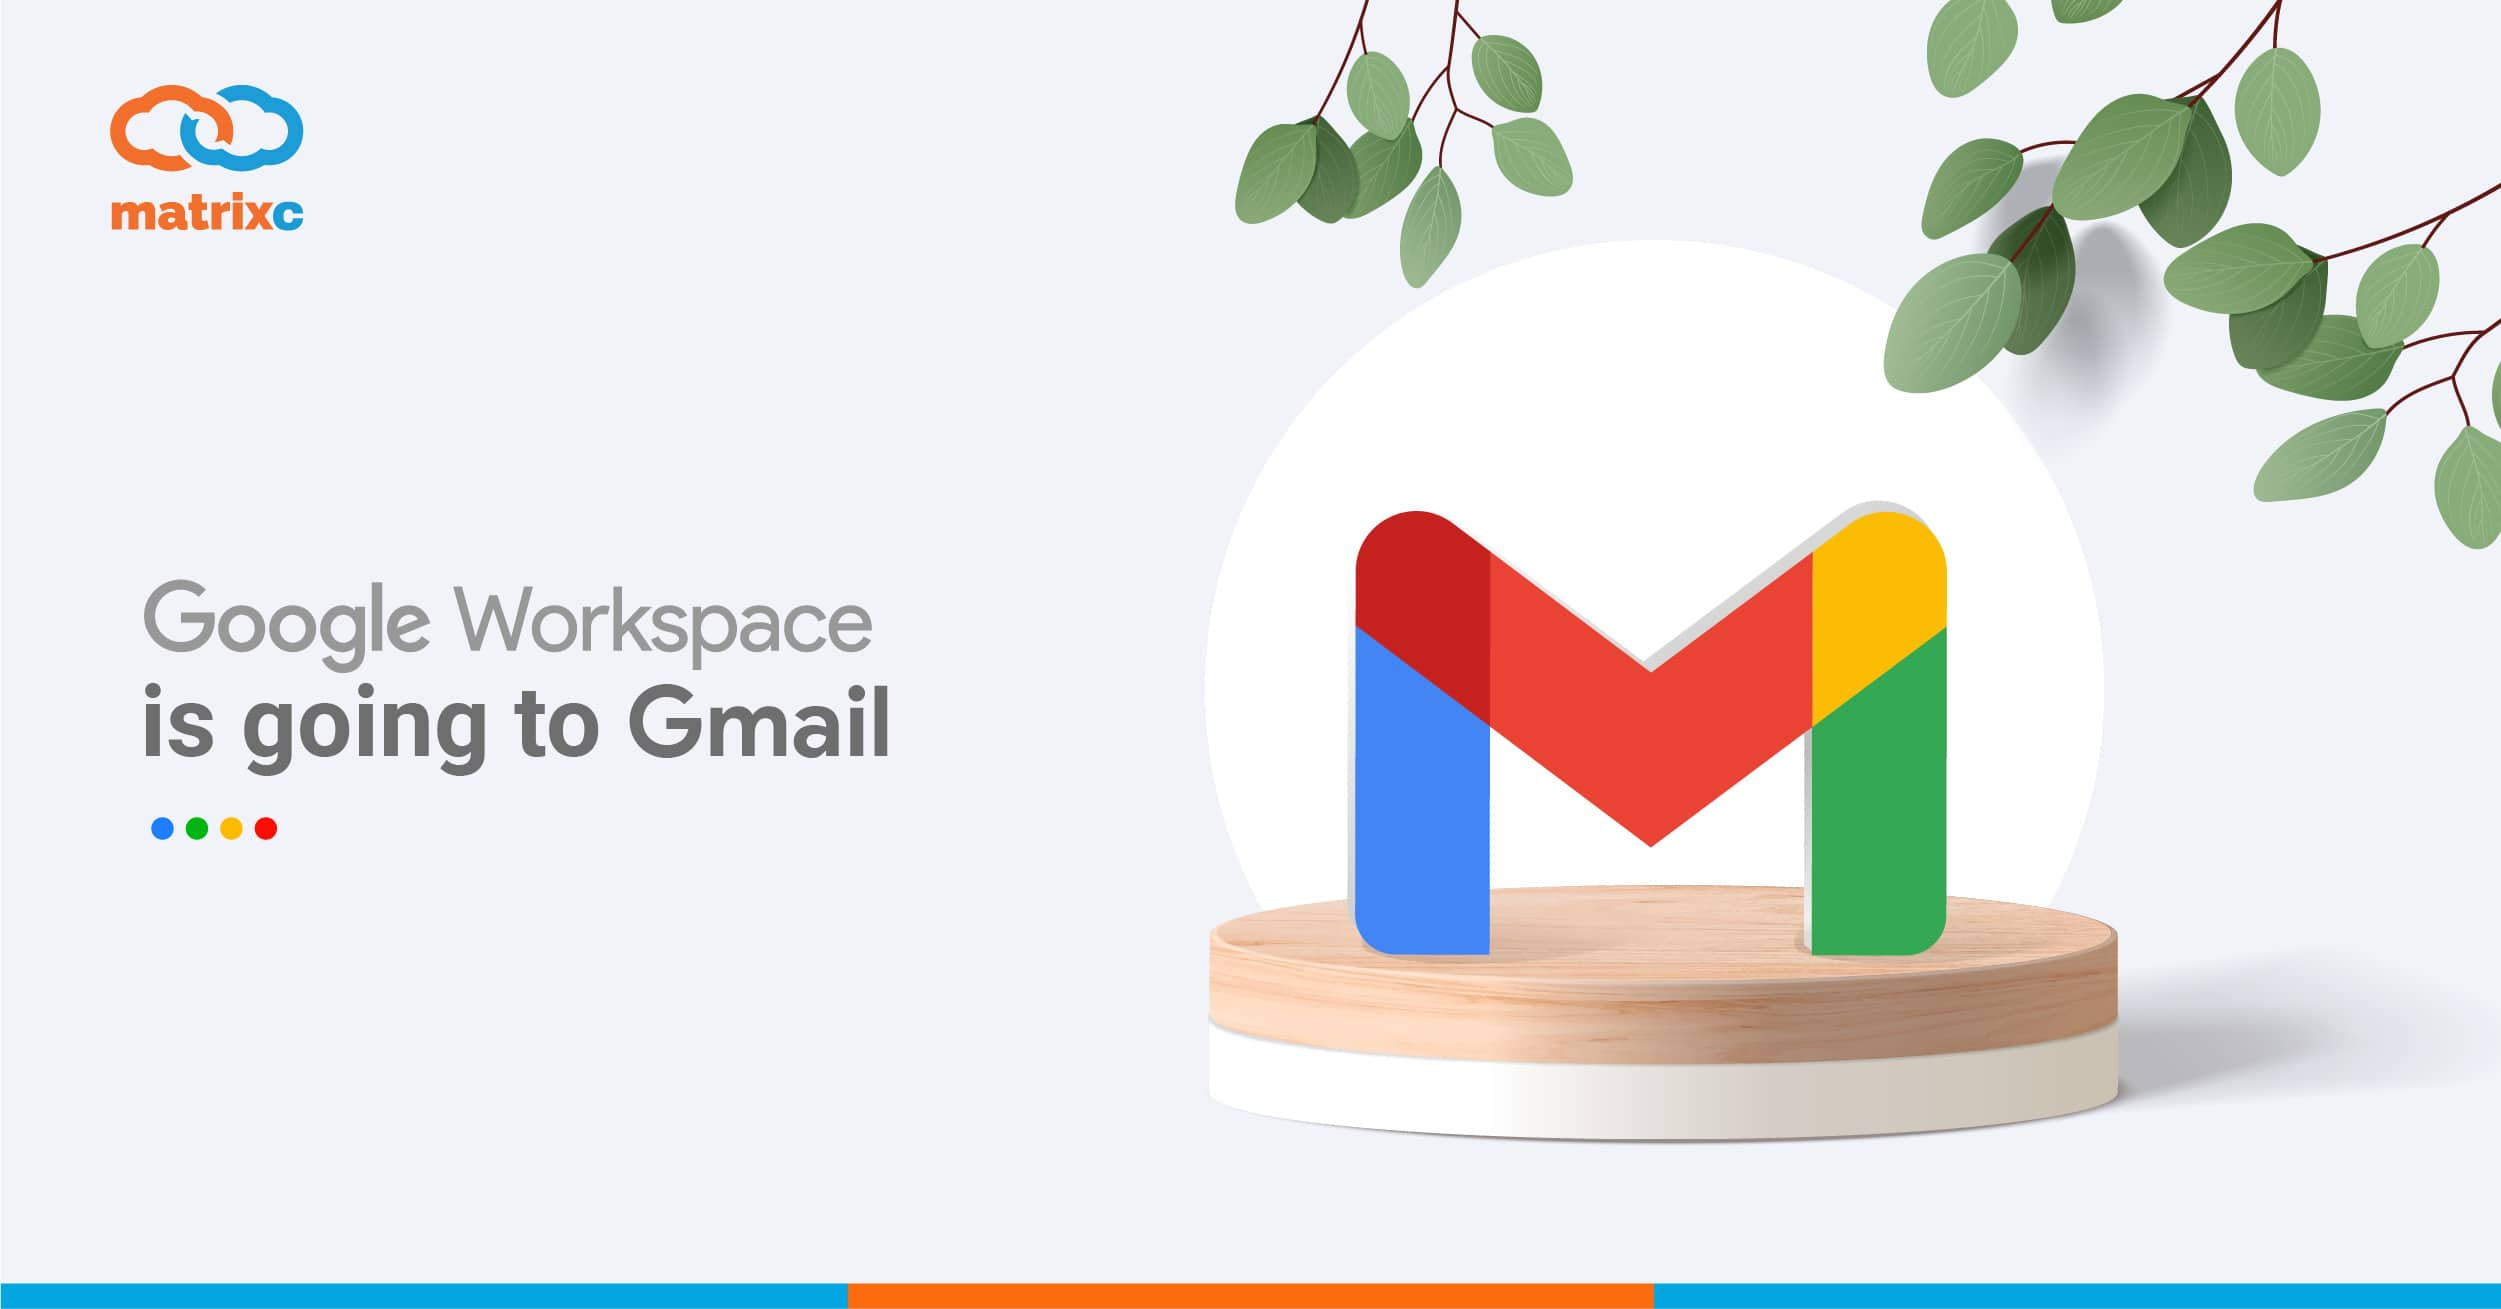 google-workspace-is-going-to-gmail